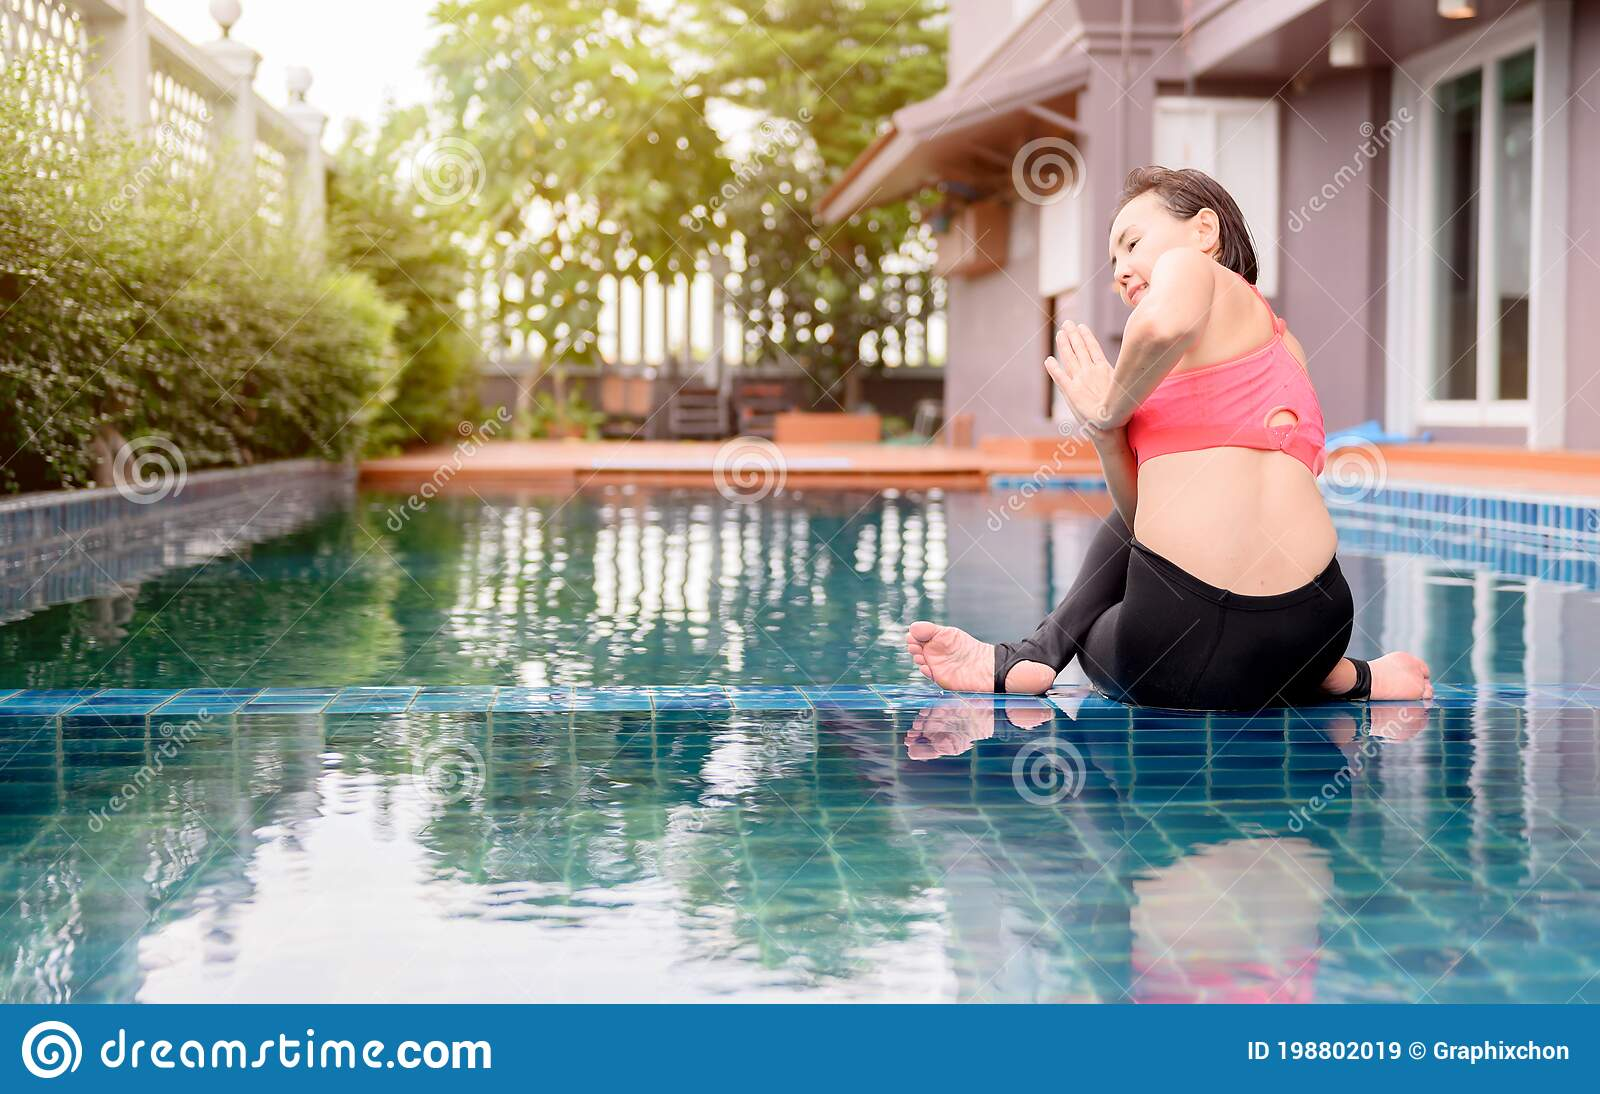 Asian Woman Yoga Breathing And Meditation Alone At Swimming Pool At Home Outdoor Exercise And Workout For Healthy Stock Image Image Of Mudra Fitness 198802019